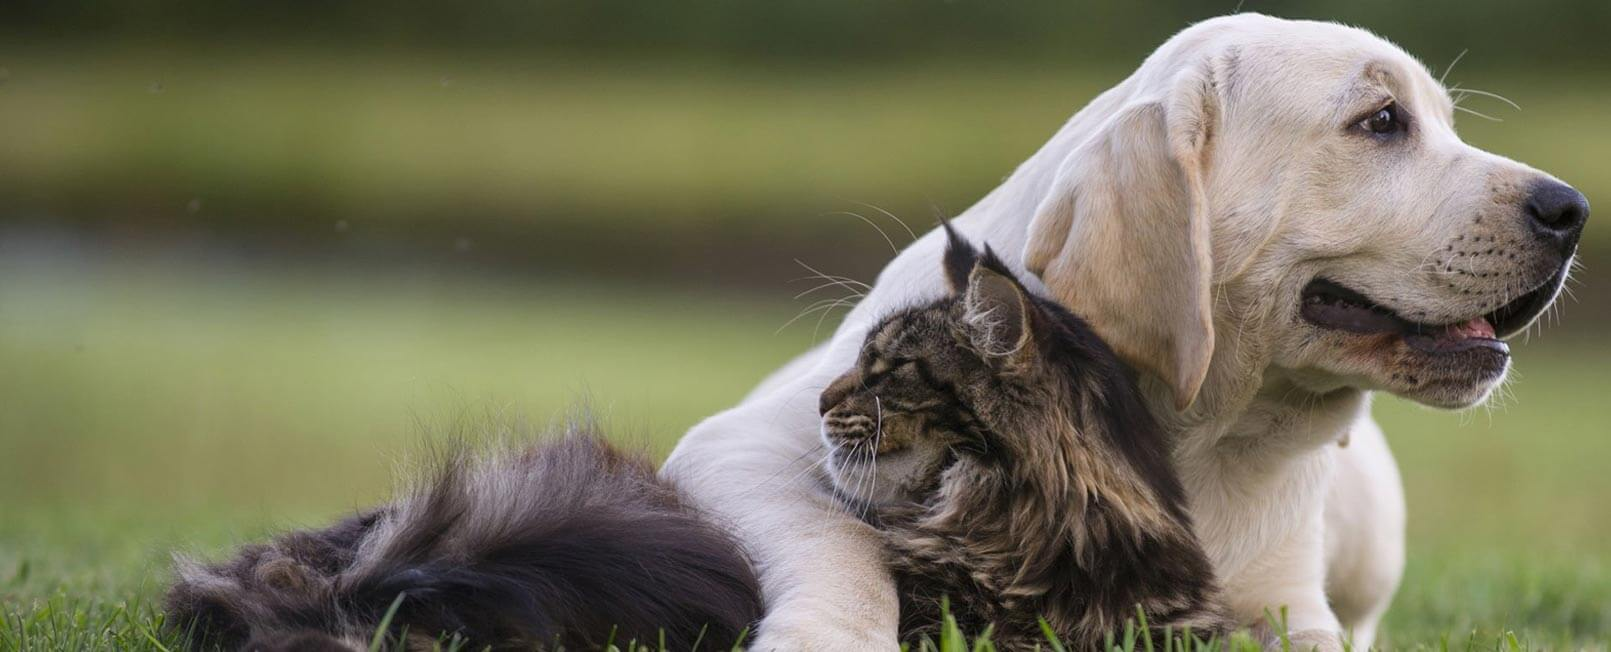 Dog and Cat snuggling in field